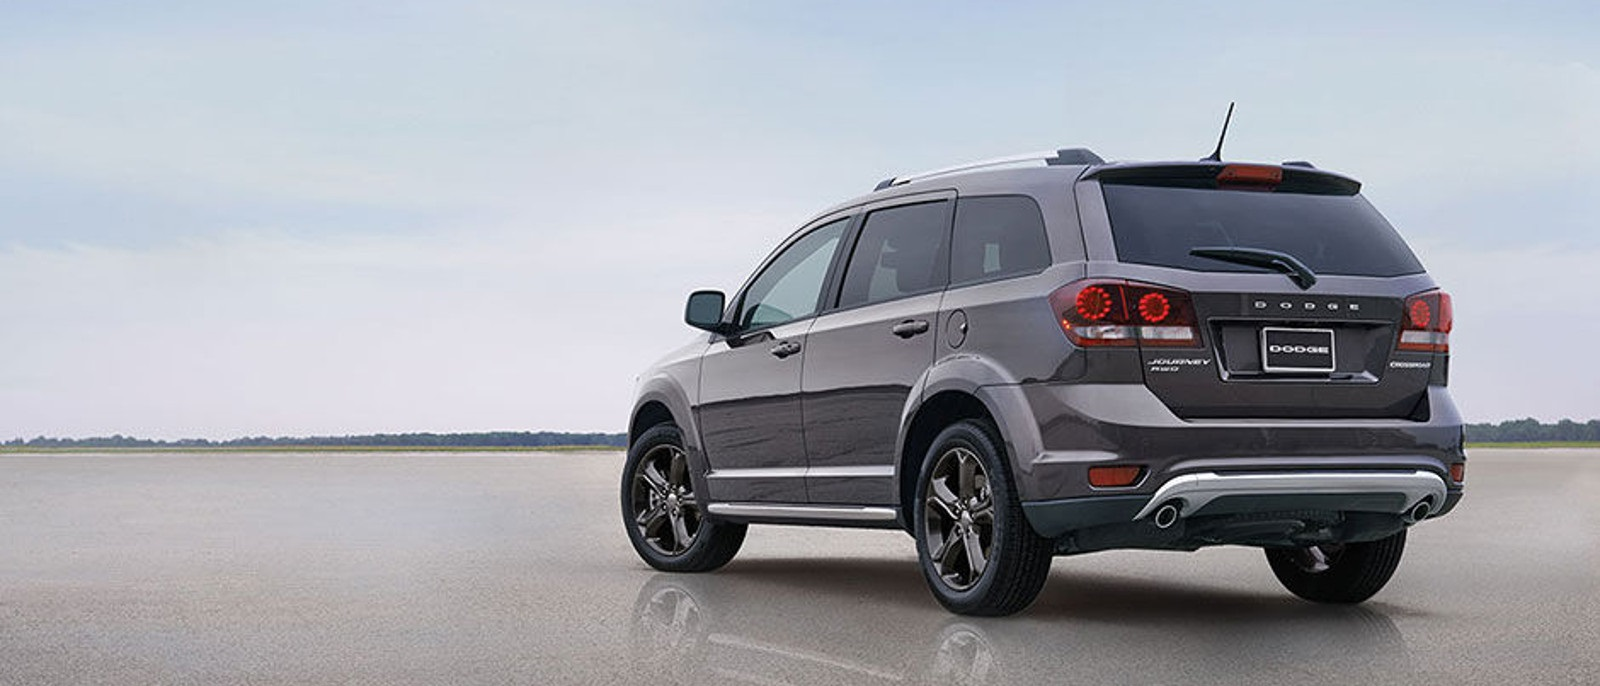 2016-Dodge-Journey-Gray-Side-Rear1